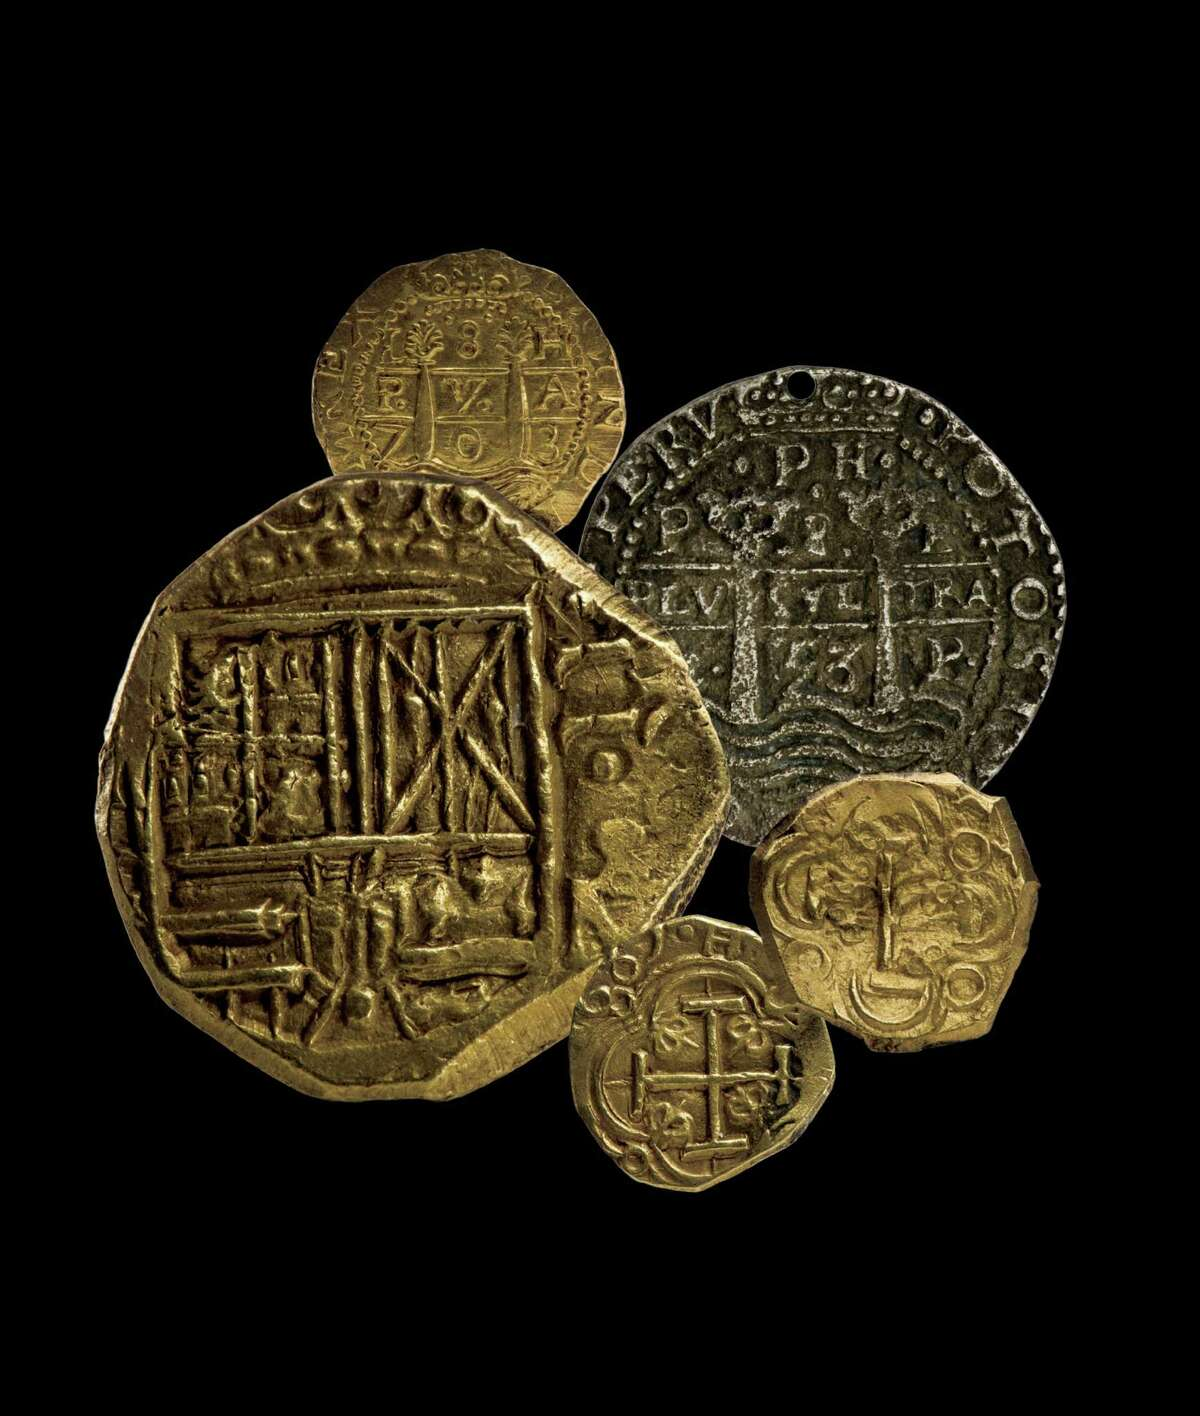 The Whydah sank in 1717 carrying thousands of gold coins and other artifacts. More is still being found at the wreck site off the coast of Cape Cod.